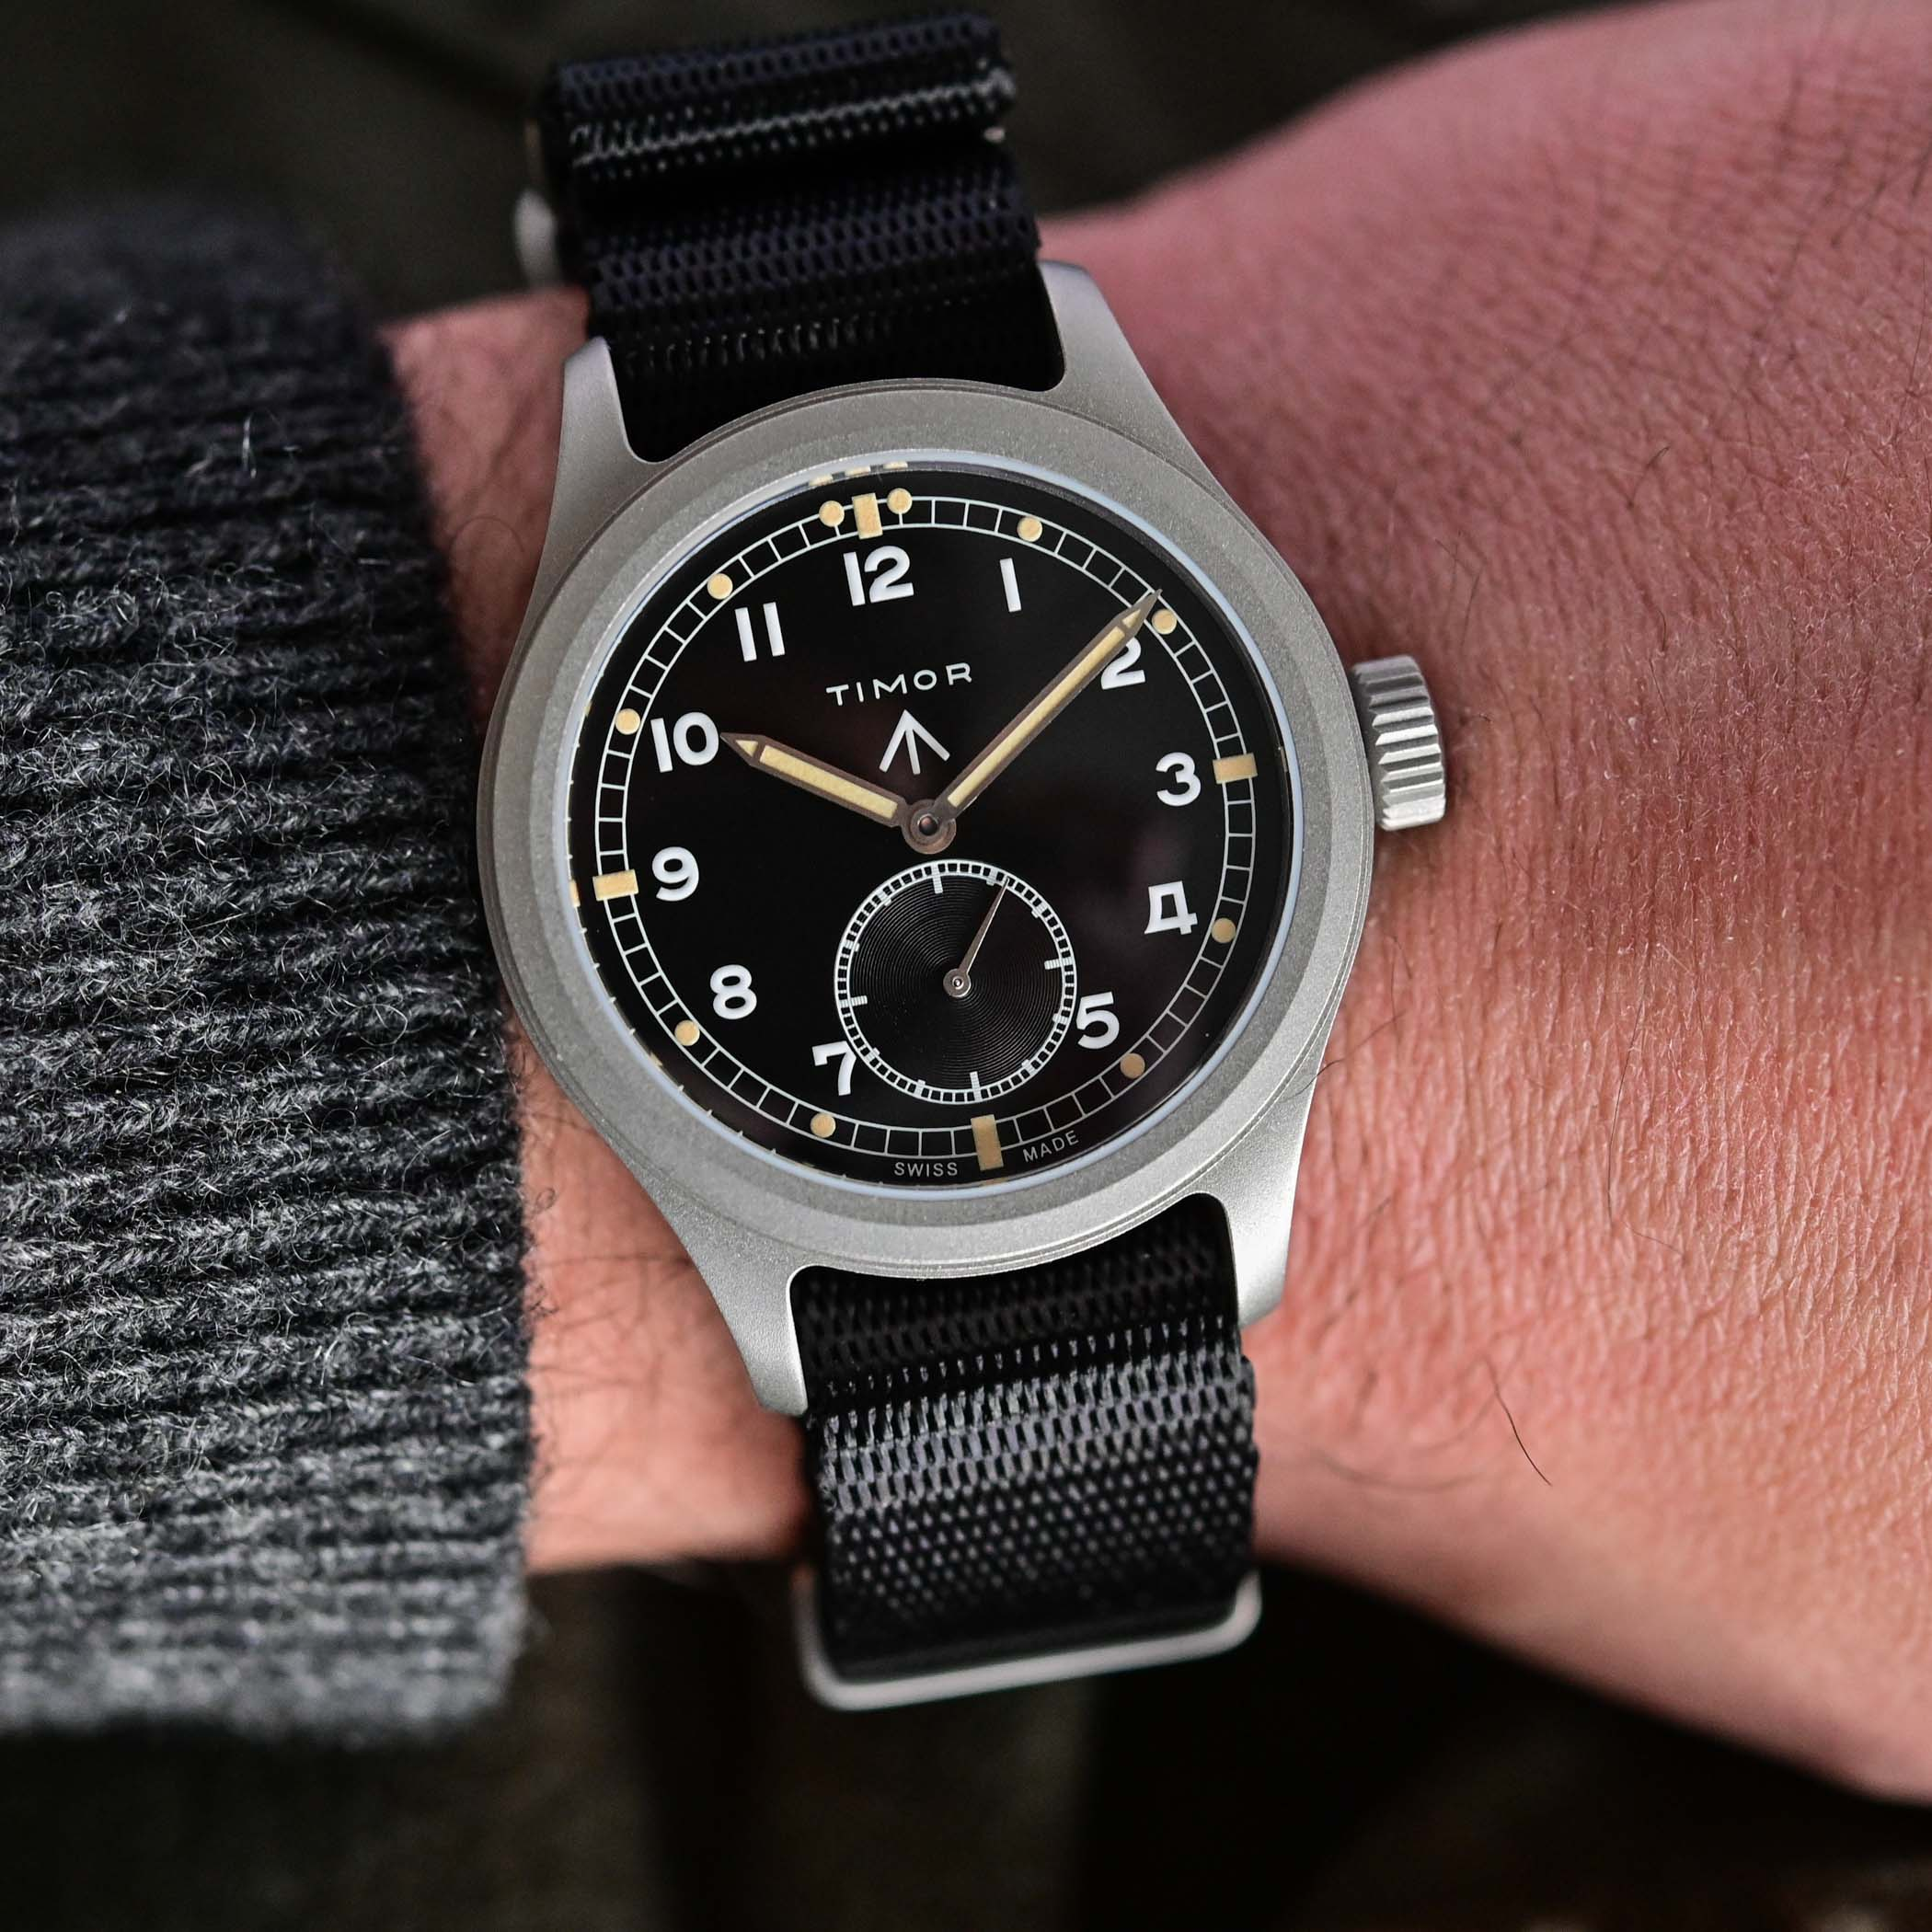 battle of accessible British military-inspired watches - comparative review Hamilton Khaki Pilot Pioneer Mechanical versus Timor Heritage Field - 2